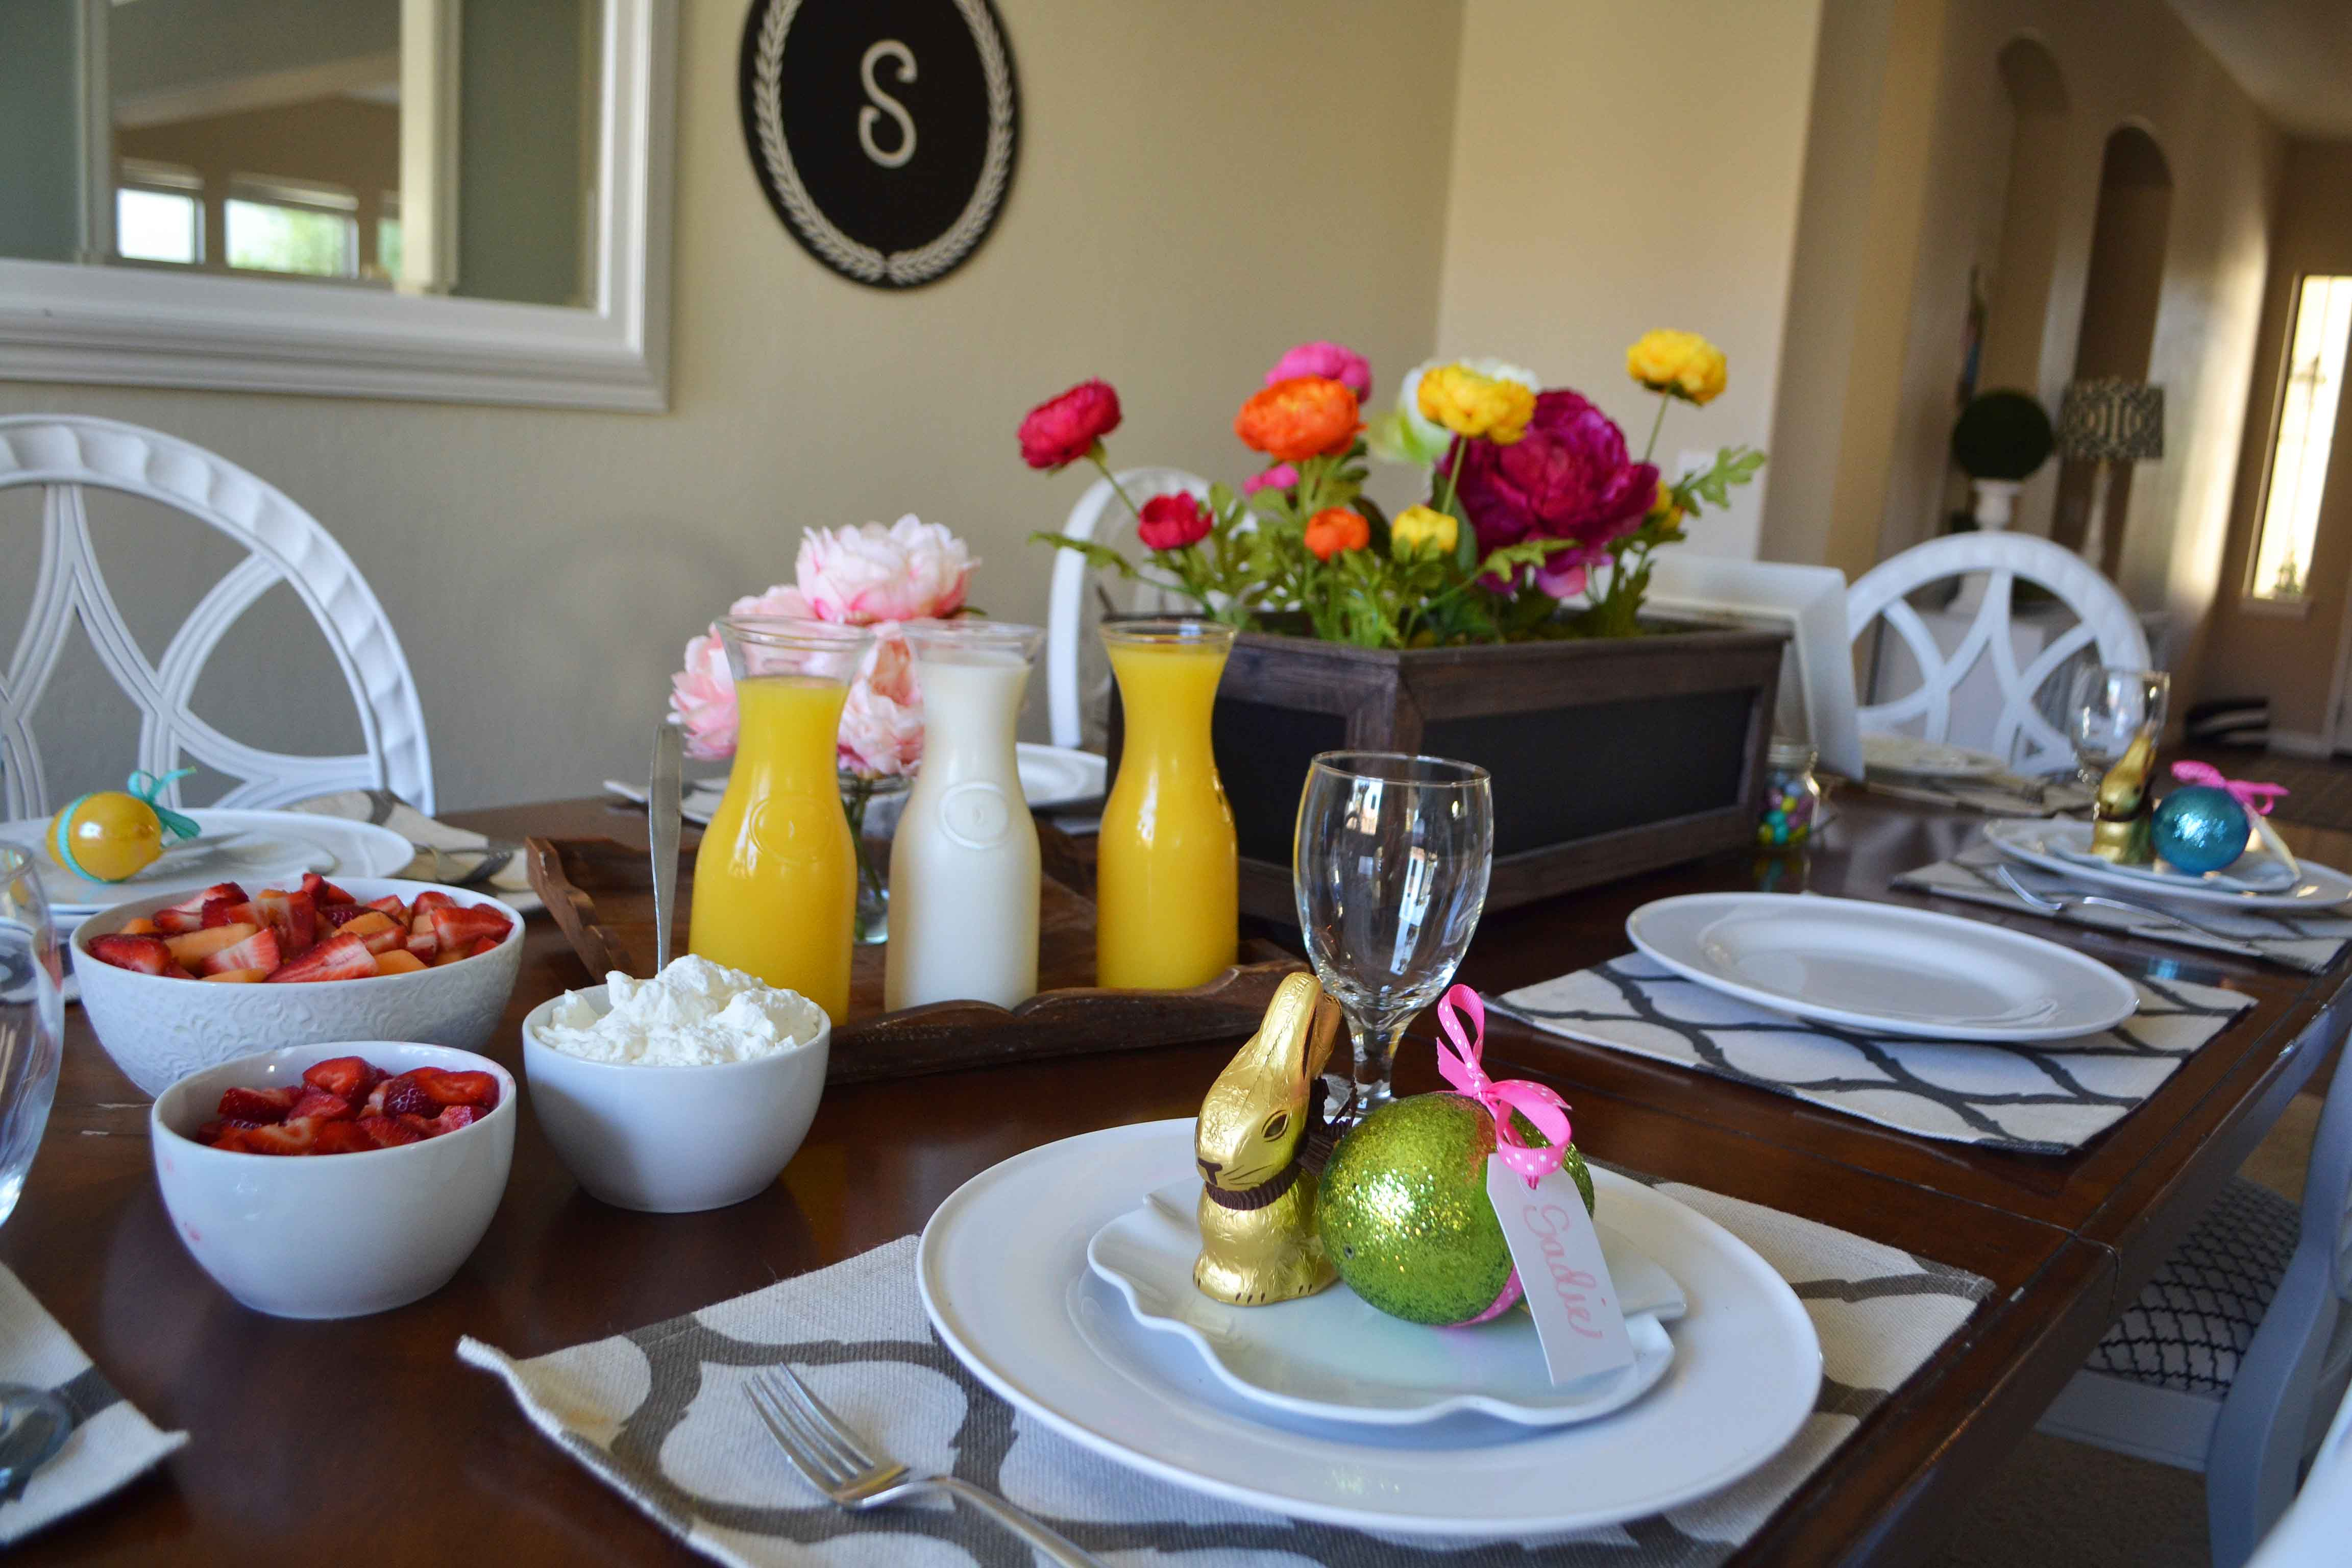 Spring Decoration Ideas. Easter and Spring tablescapes to brighten your home. Easter brunch at home. www.modernhoney.com